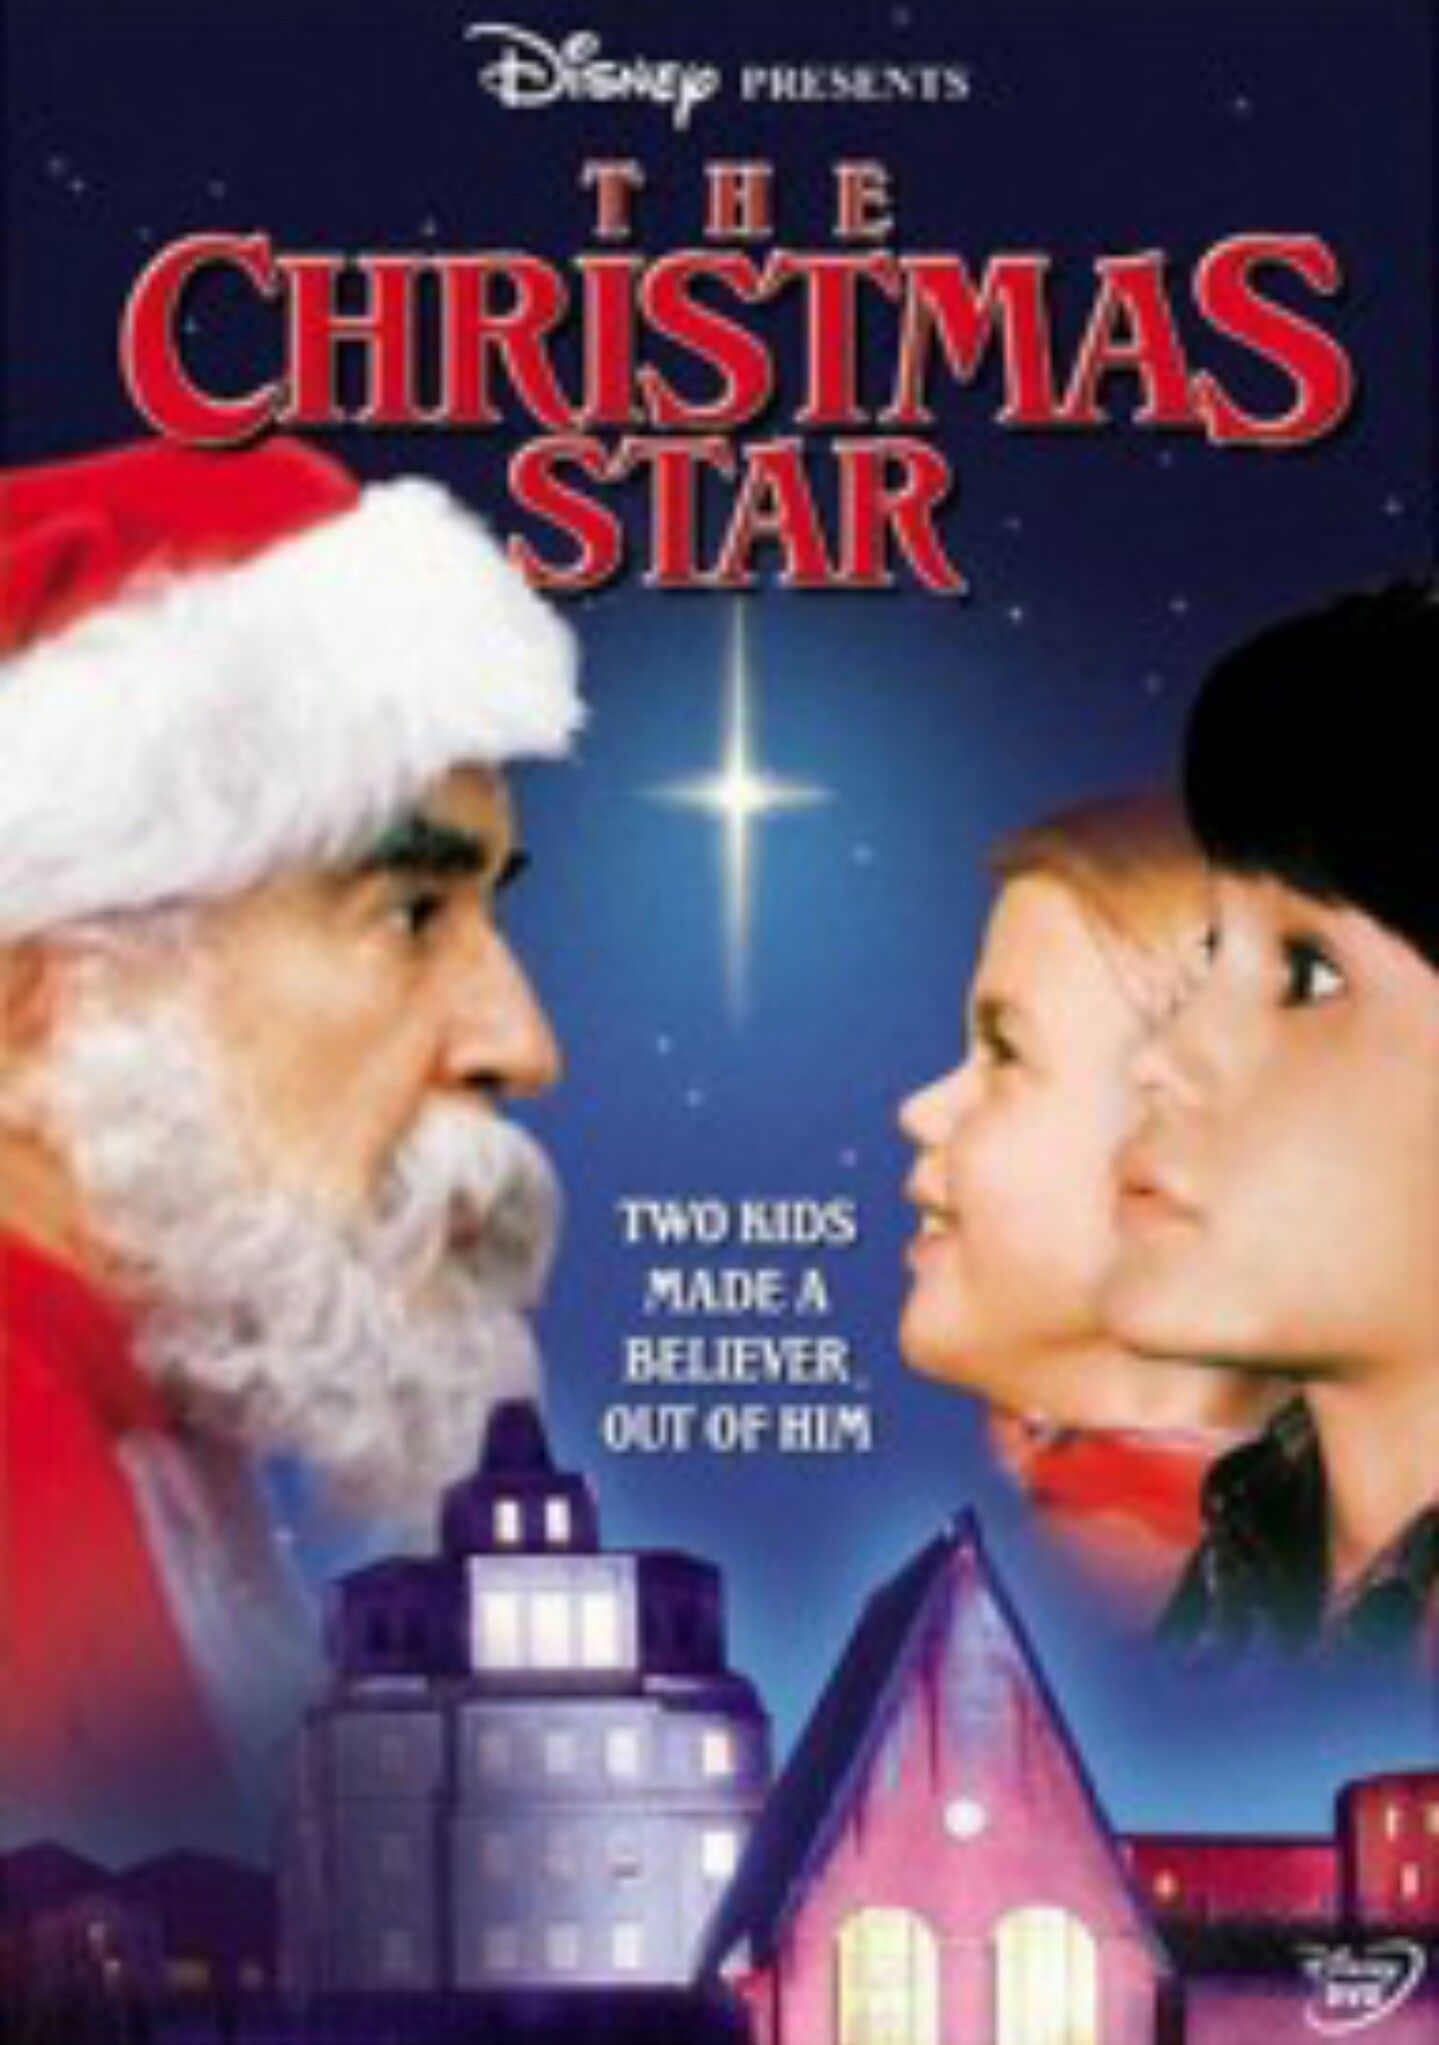 The Christmas Star 1986 Horace Mcnickle Escapes Prison By Dressing As Santa And Whilst In Hide Out Two Chi Christmas Movies List Disney Presents Christmas Star